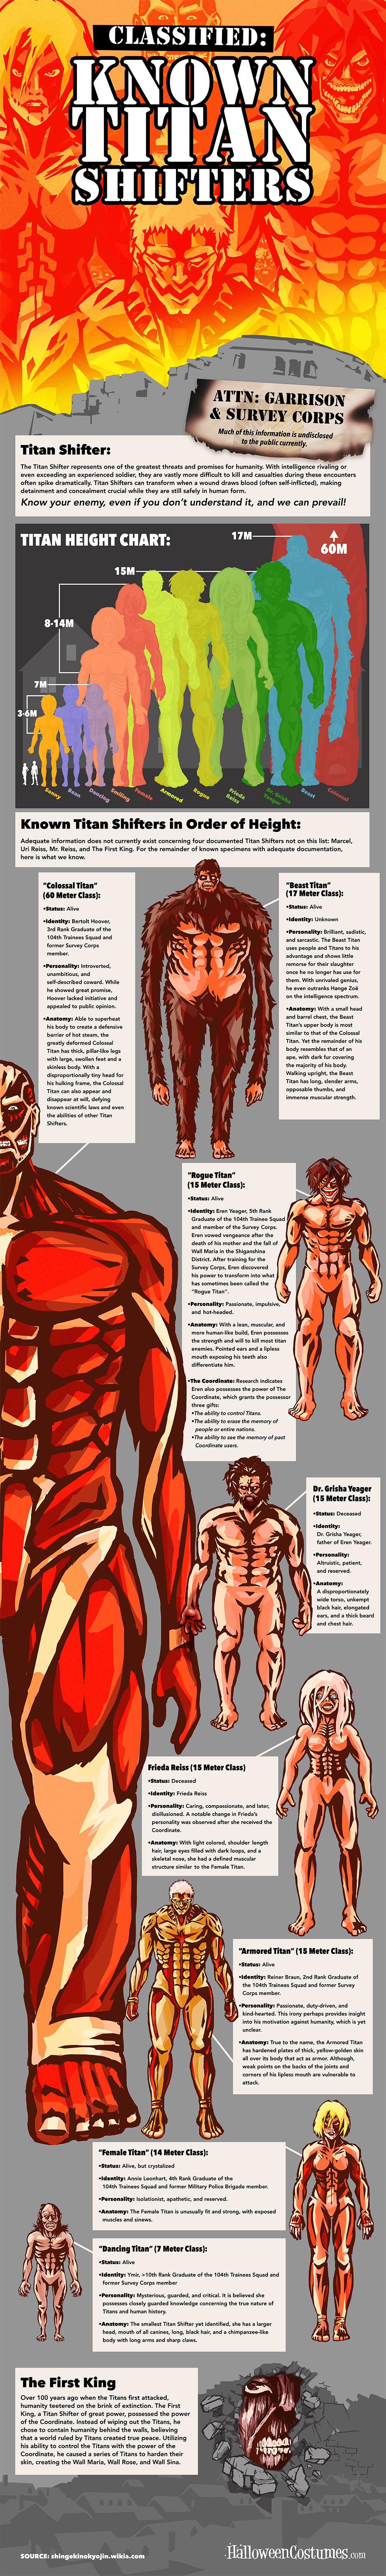 Attack on Titan: Titan Shifters Infographic